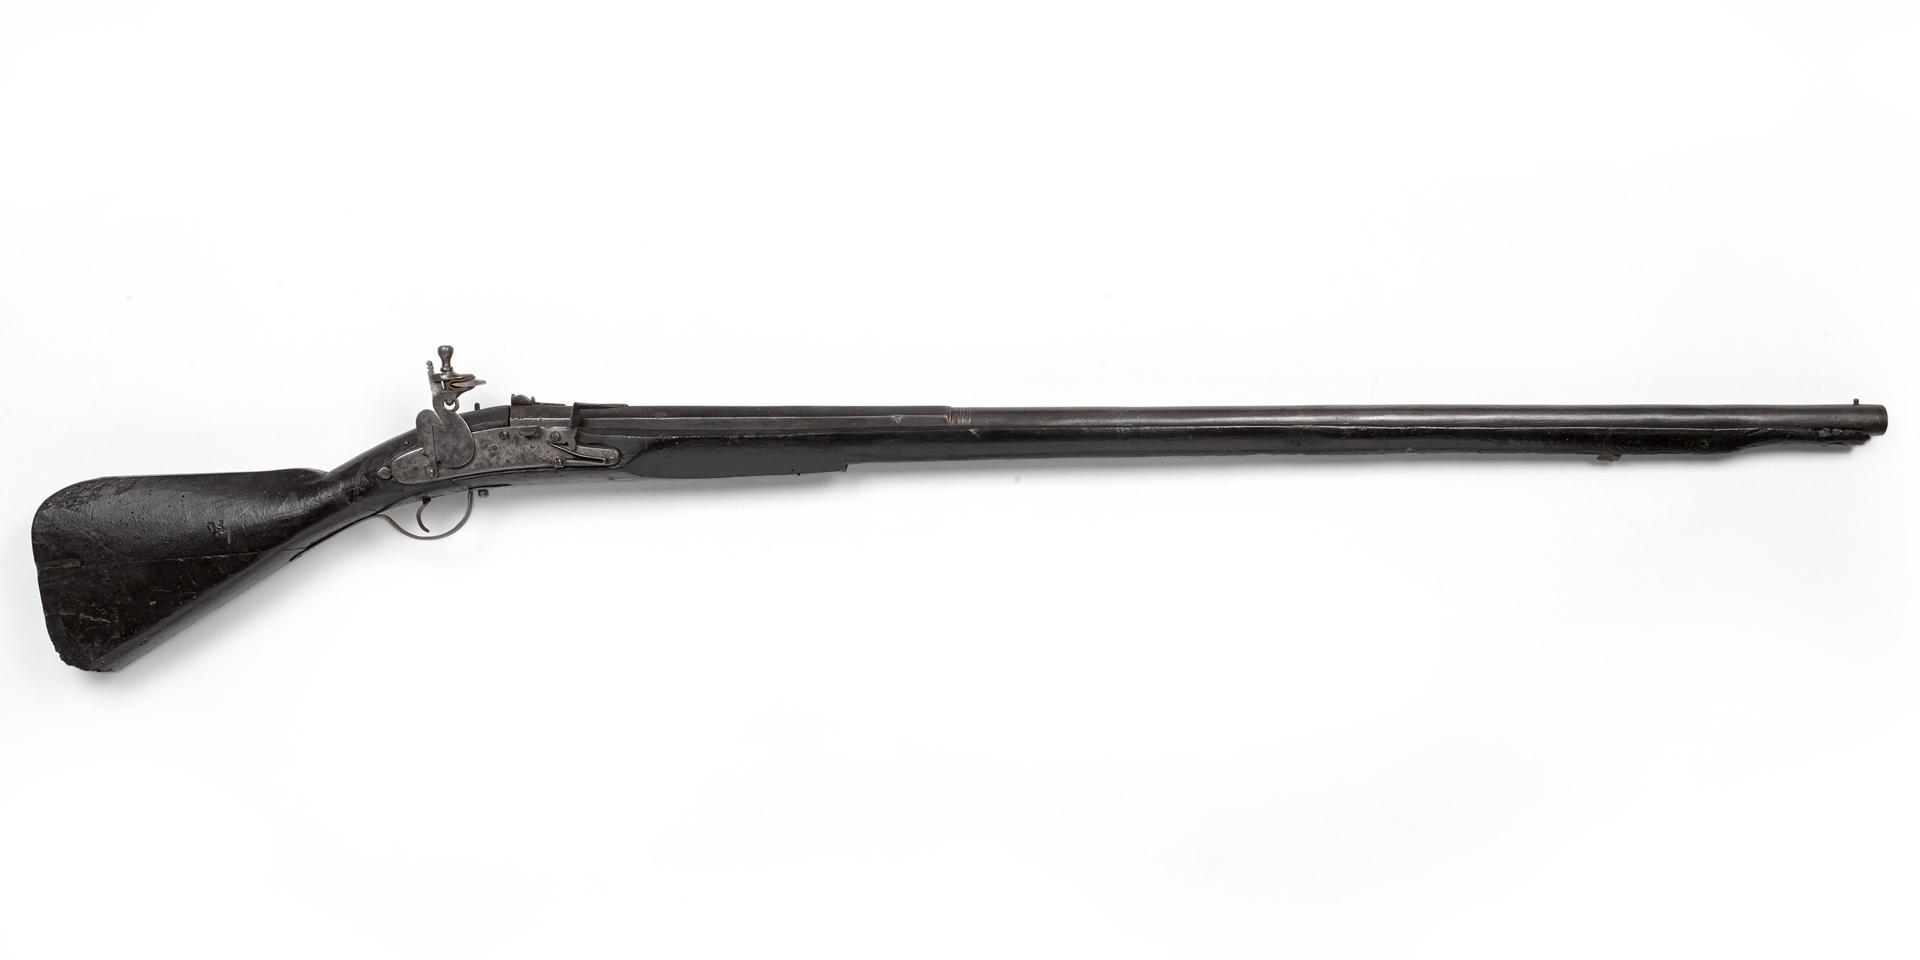 Flintlock English lock musket, c1660